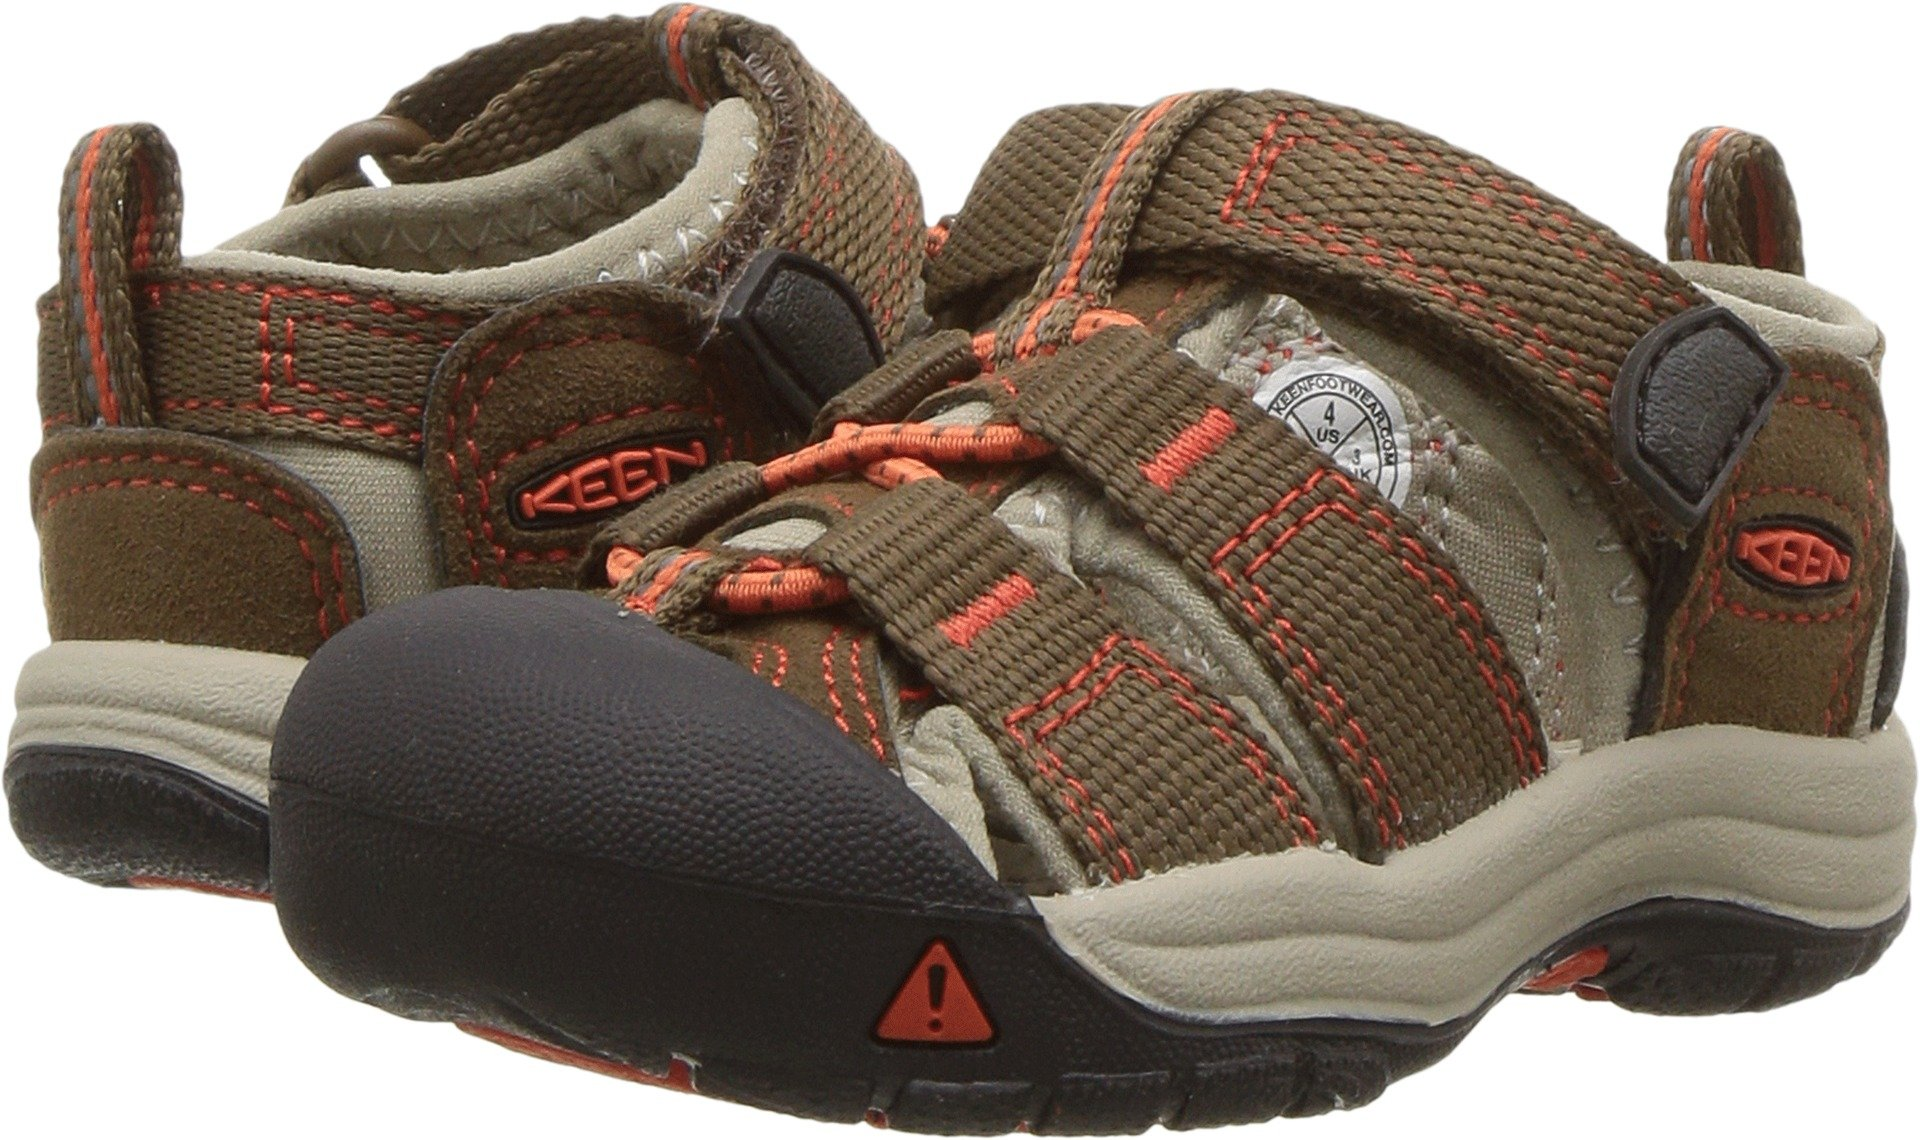 KEEN Toddler (1-4 Years) Newport H2 Dark Earth/Spicy Orange Sandal - 7 M US Toddler